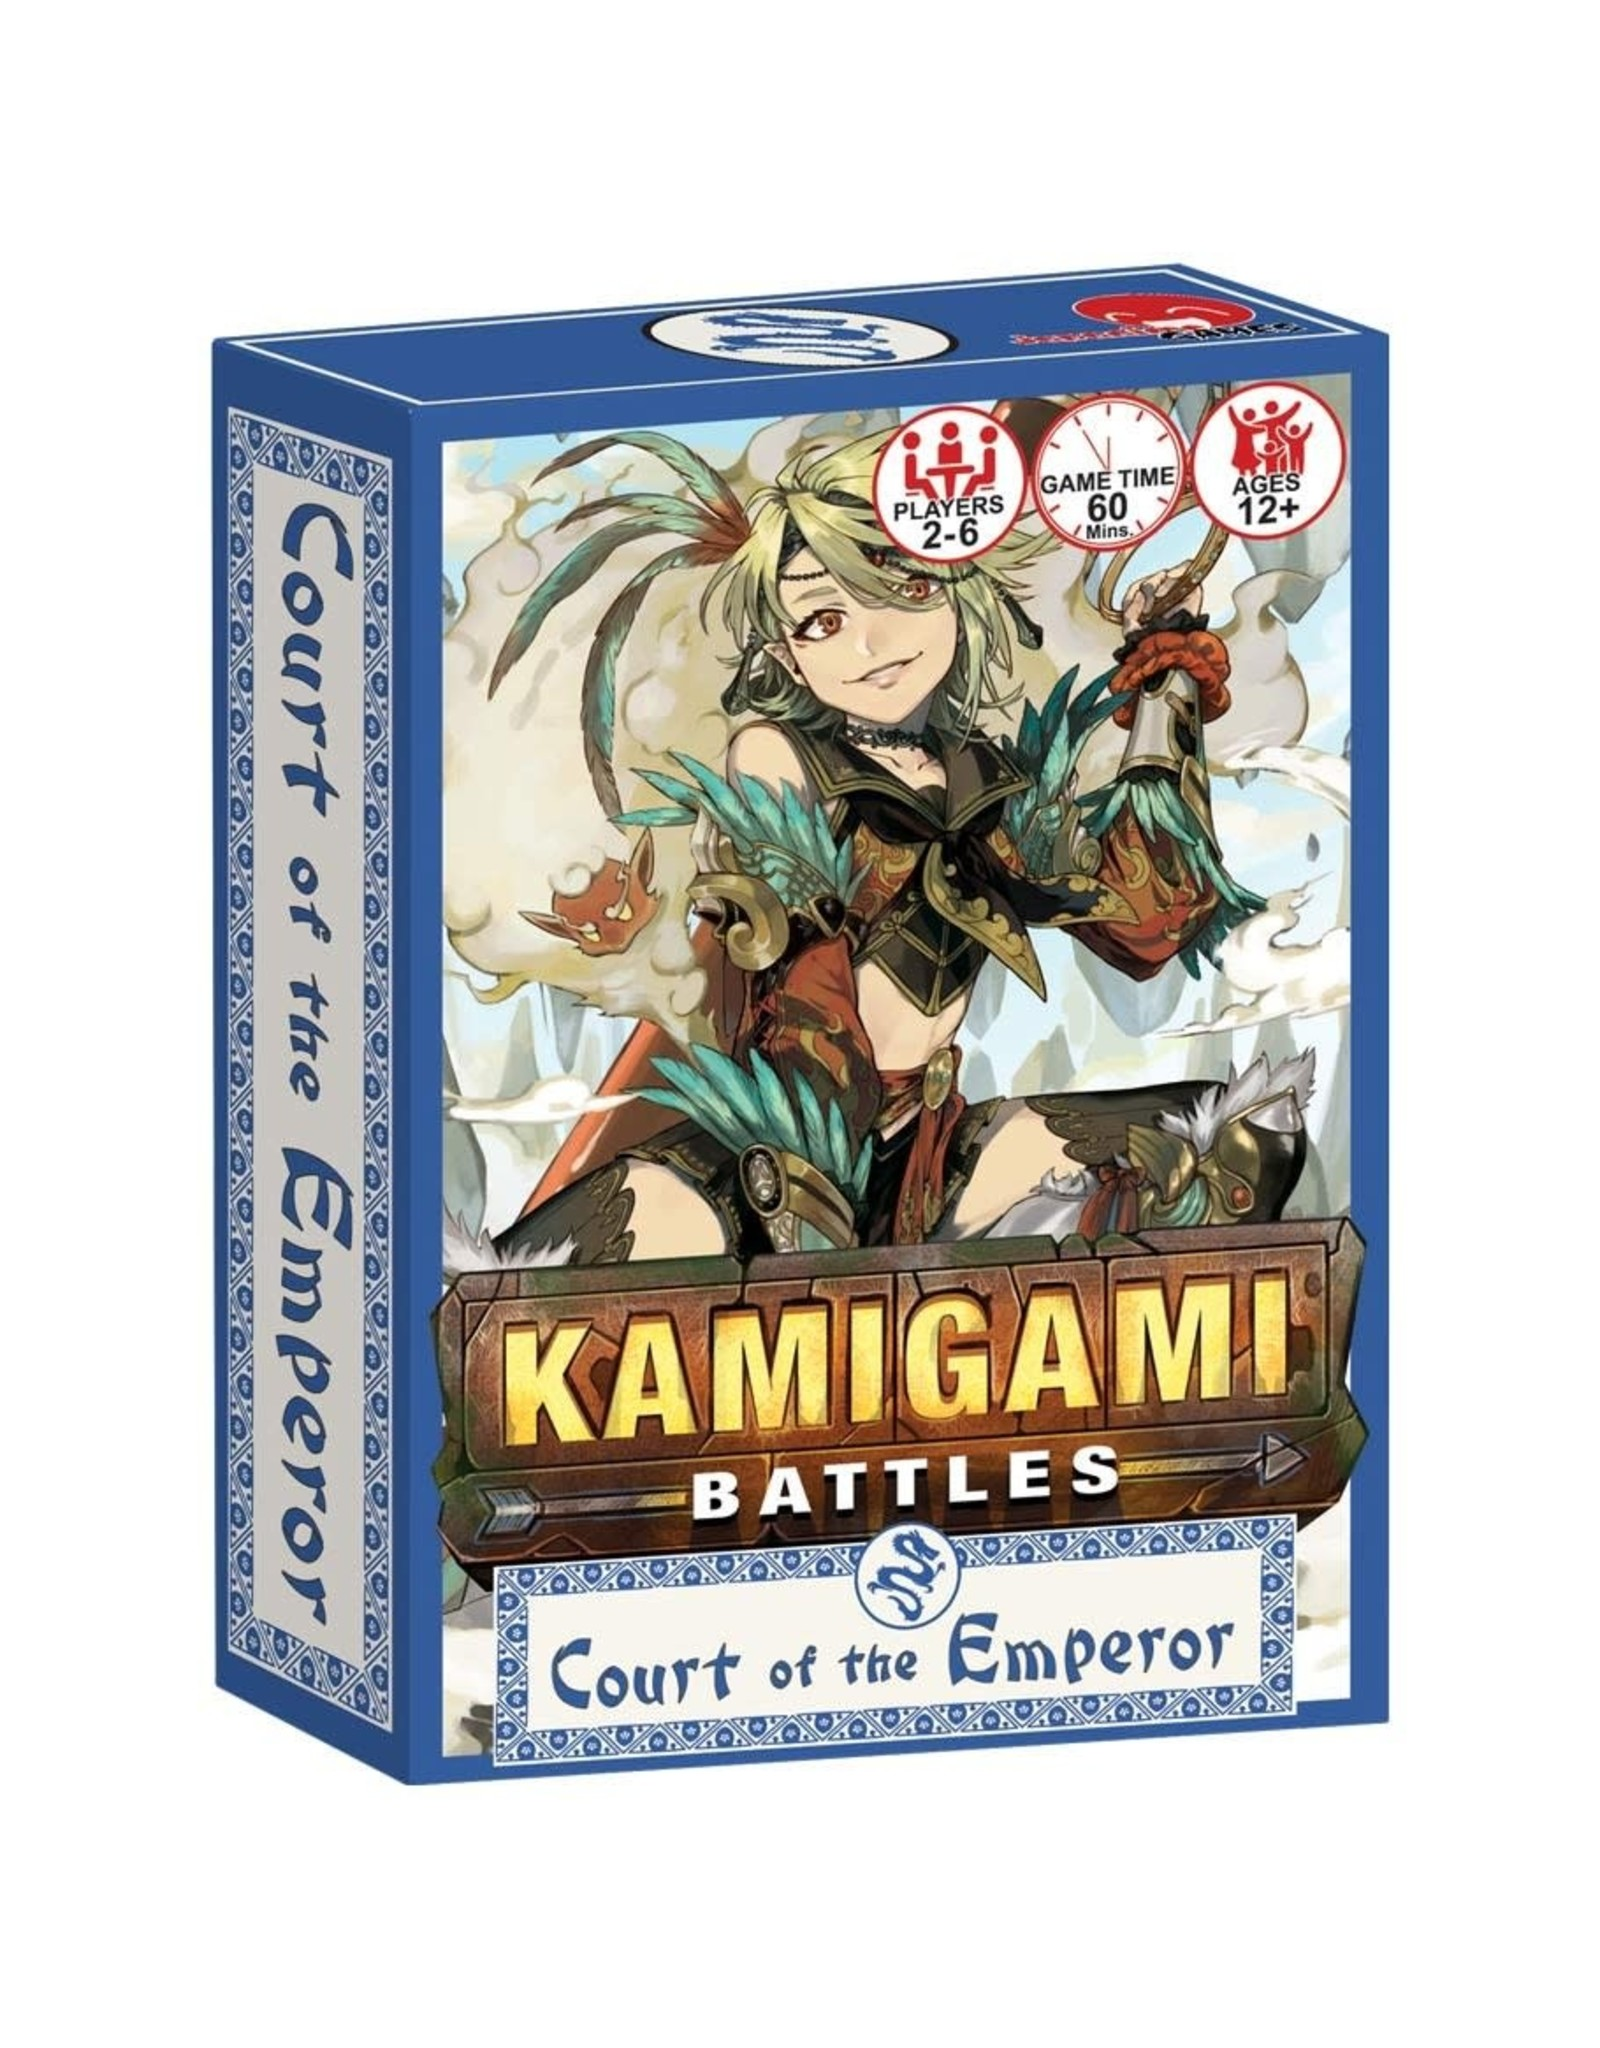 Japanime Games Kamigami Battles: Court of the Emperor